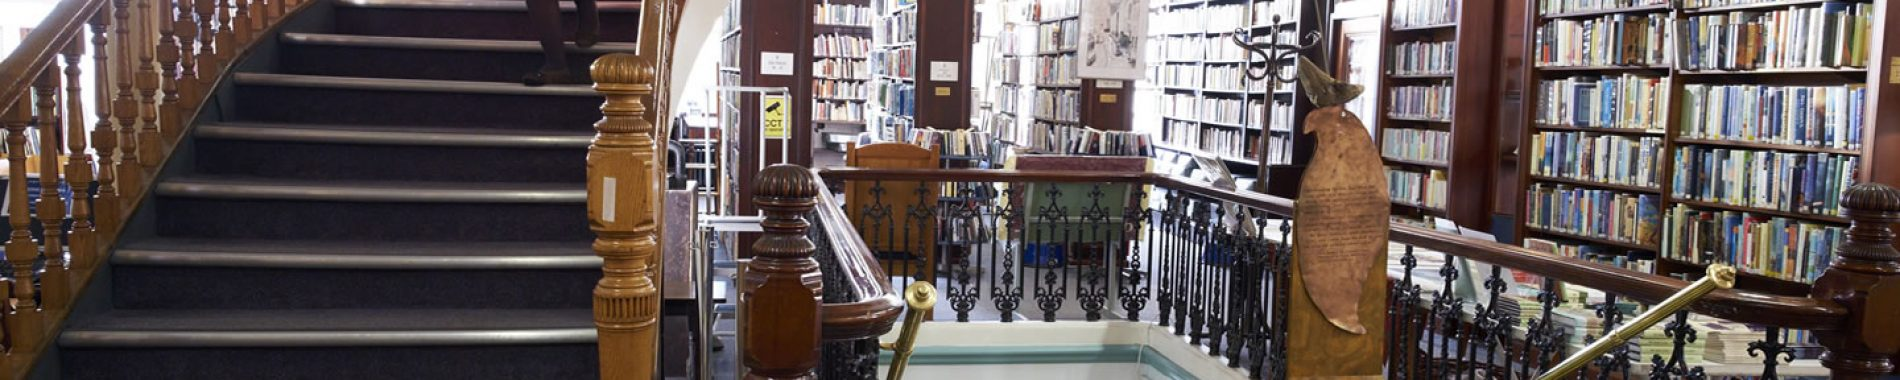 Linen Hall Library Reception